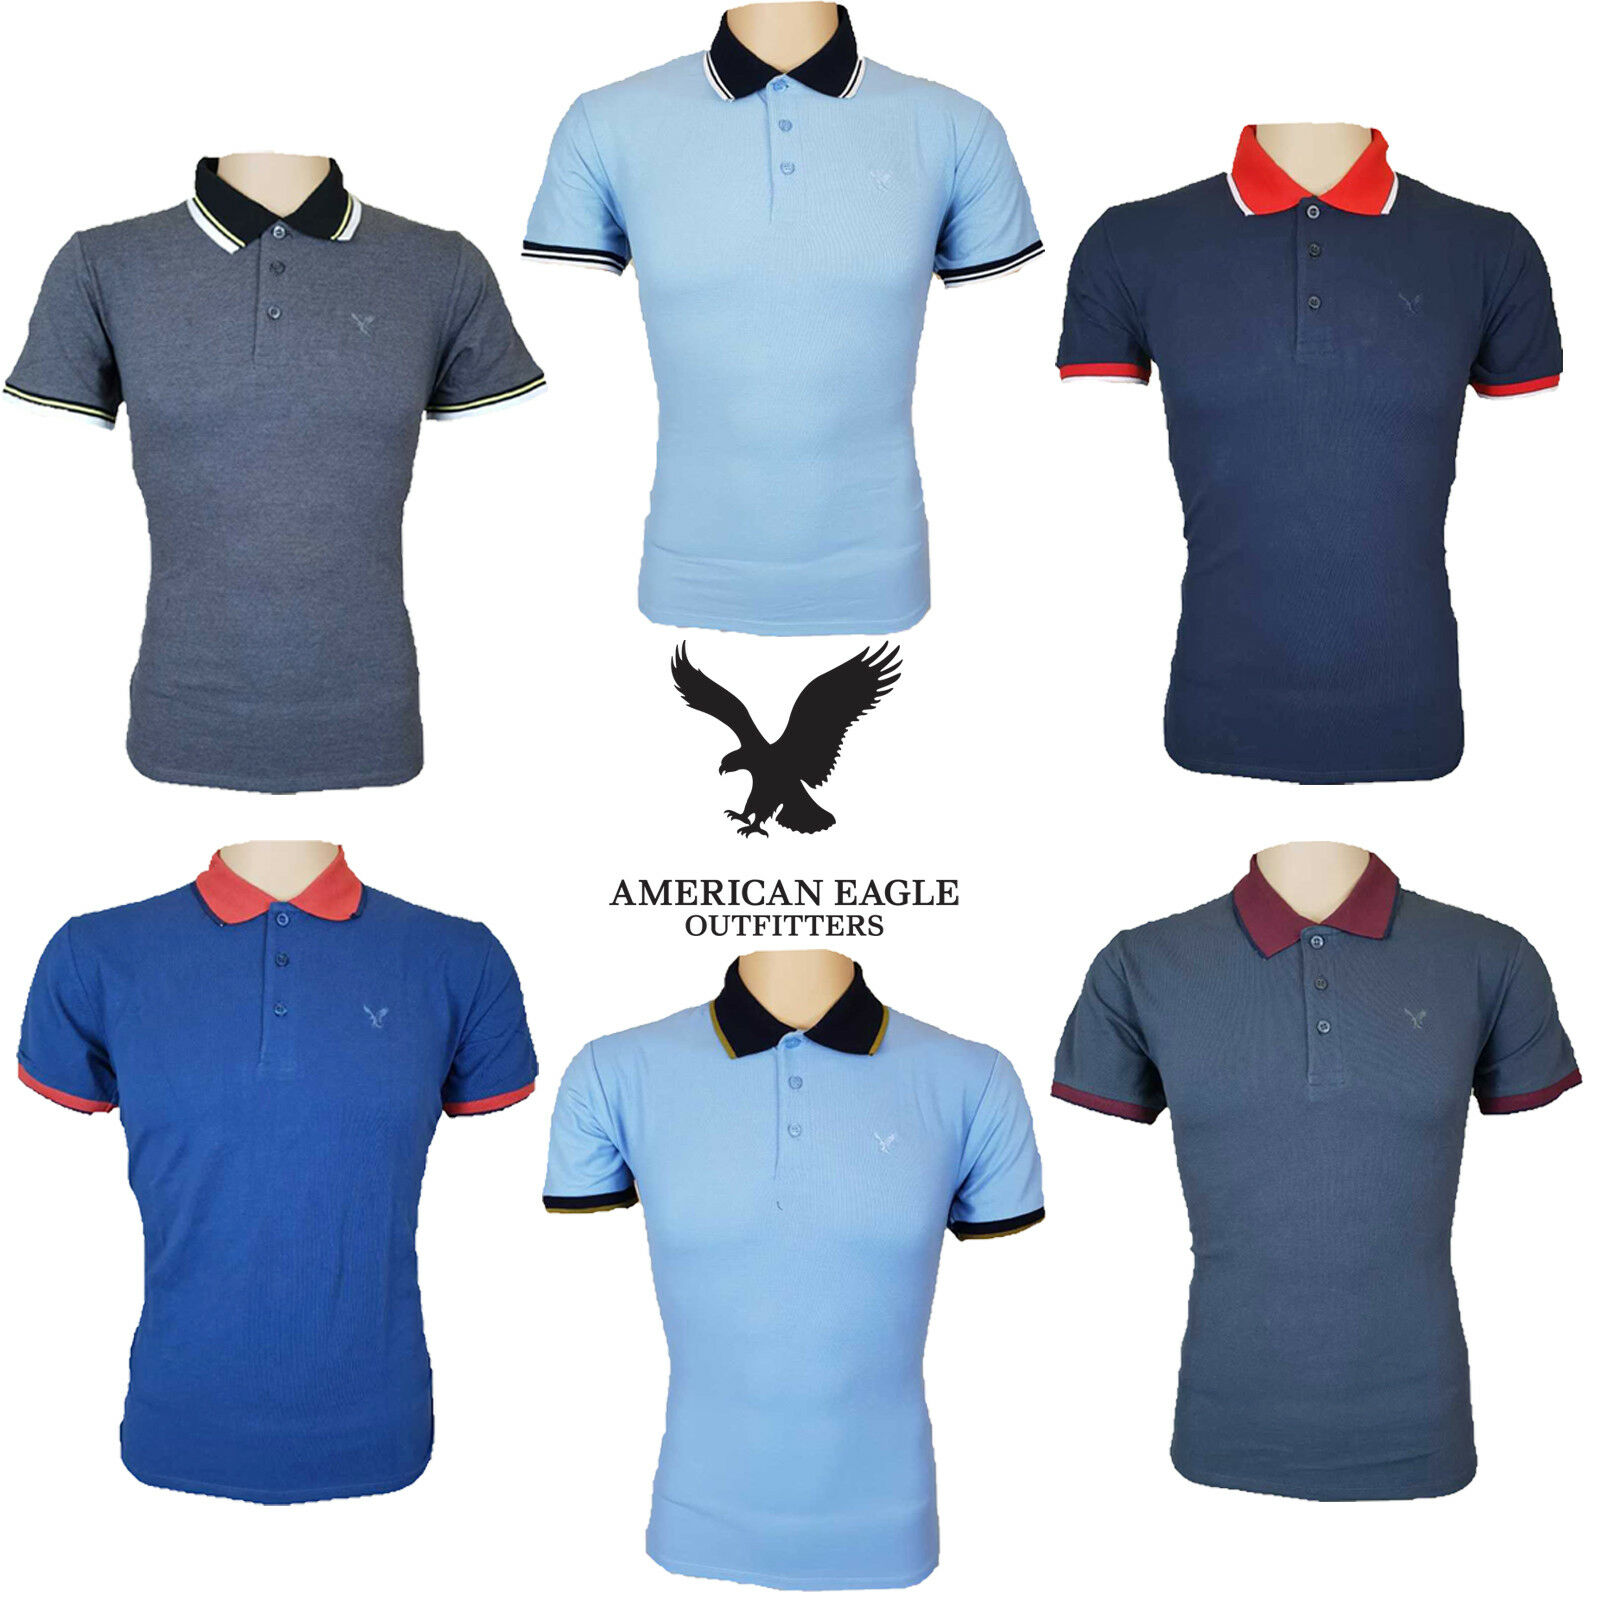 0bb36eaf4d7f9 Mens Polo Top Shirts Tipped American Eagle Outfitters Cotton T-Shirts UK  S-2XL